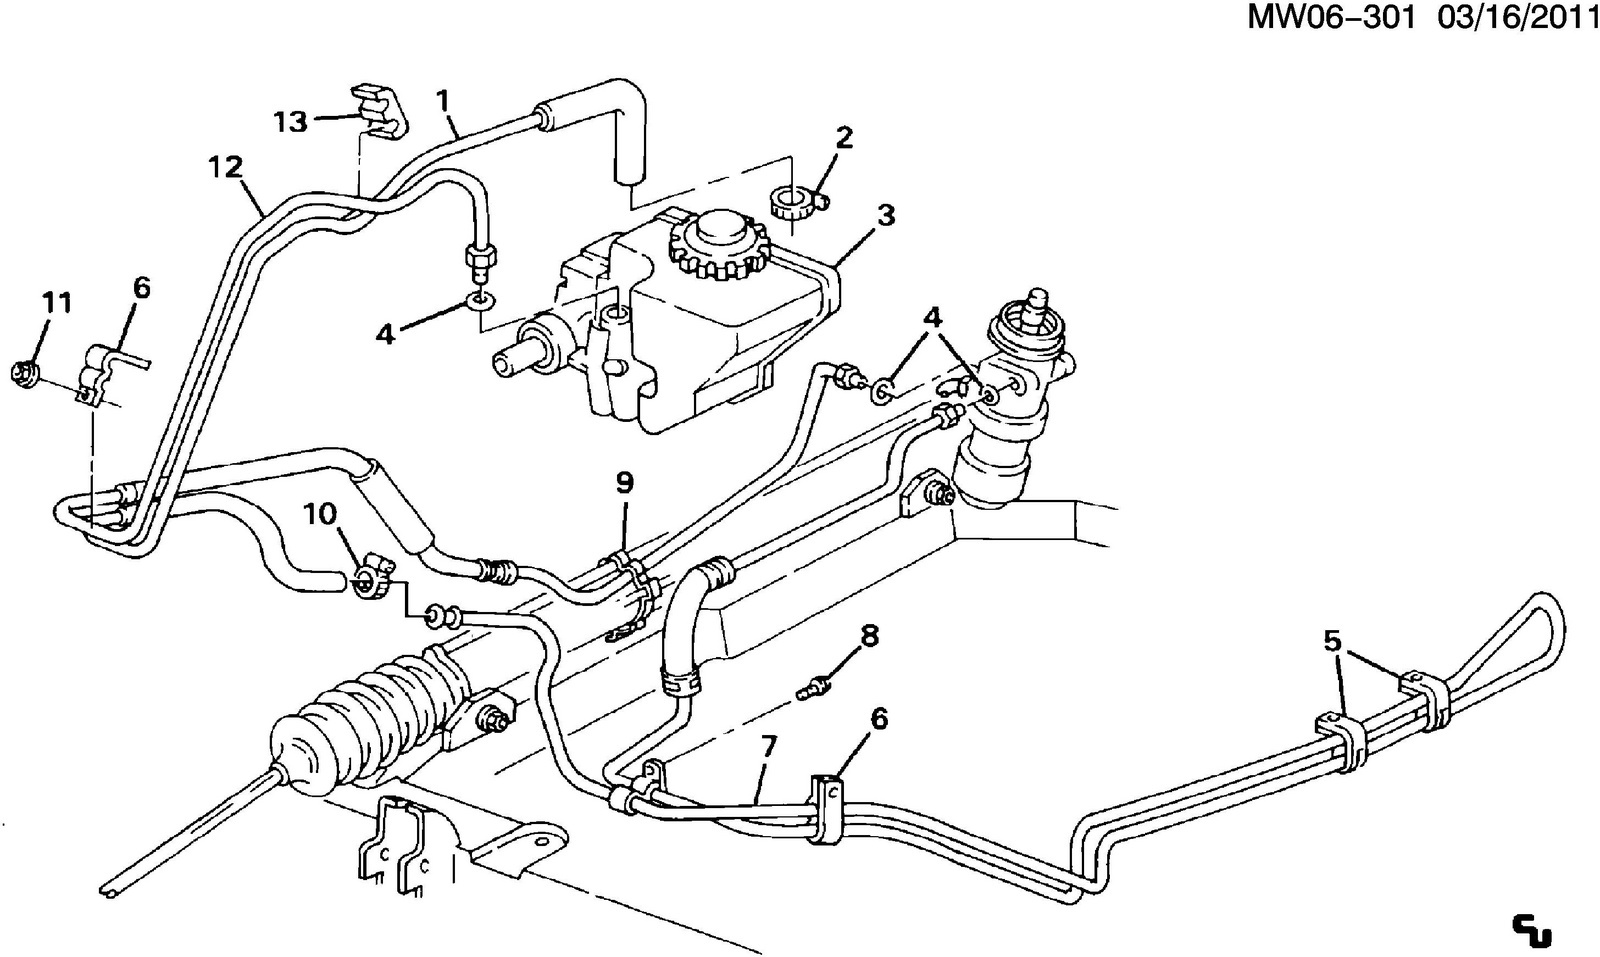 Discussion T16816 ds577757 on 1995 buick lesabre engine wiring diagrams